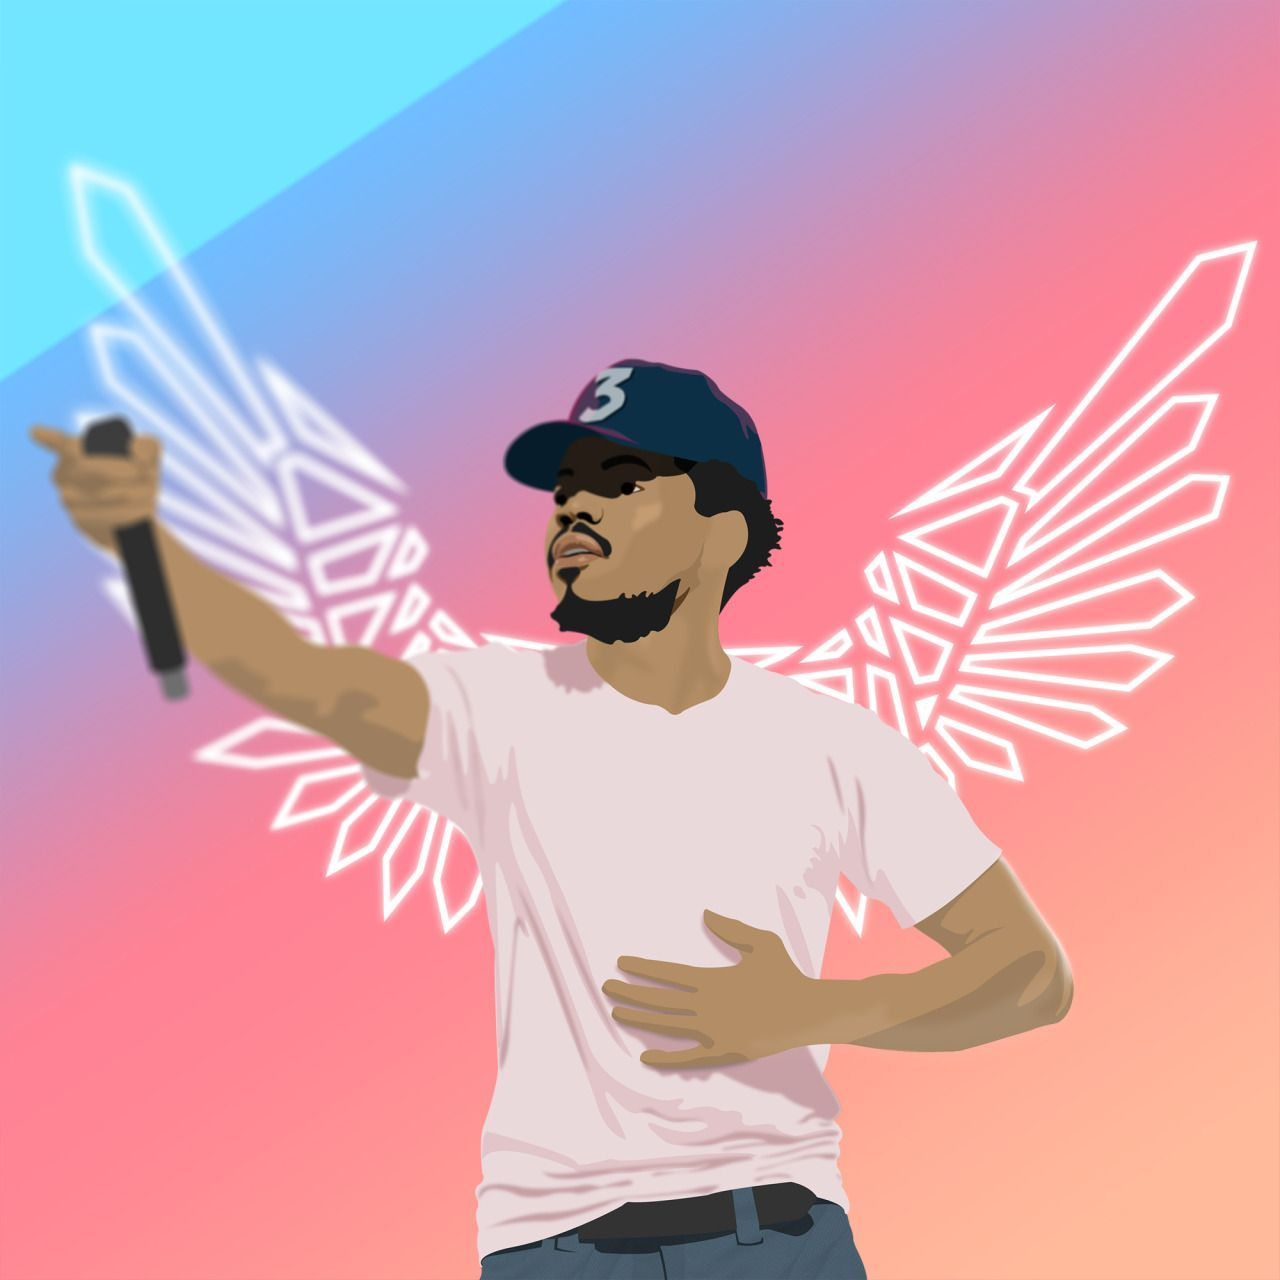 Chance The Rapper Cartoon Wallpapers Top Free Chance The Rapper Cartoon Backgrounds Wallpaperaccess